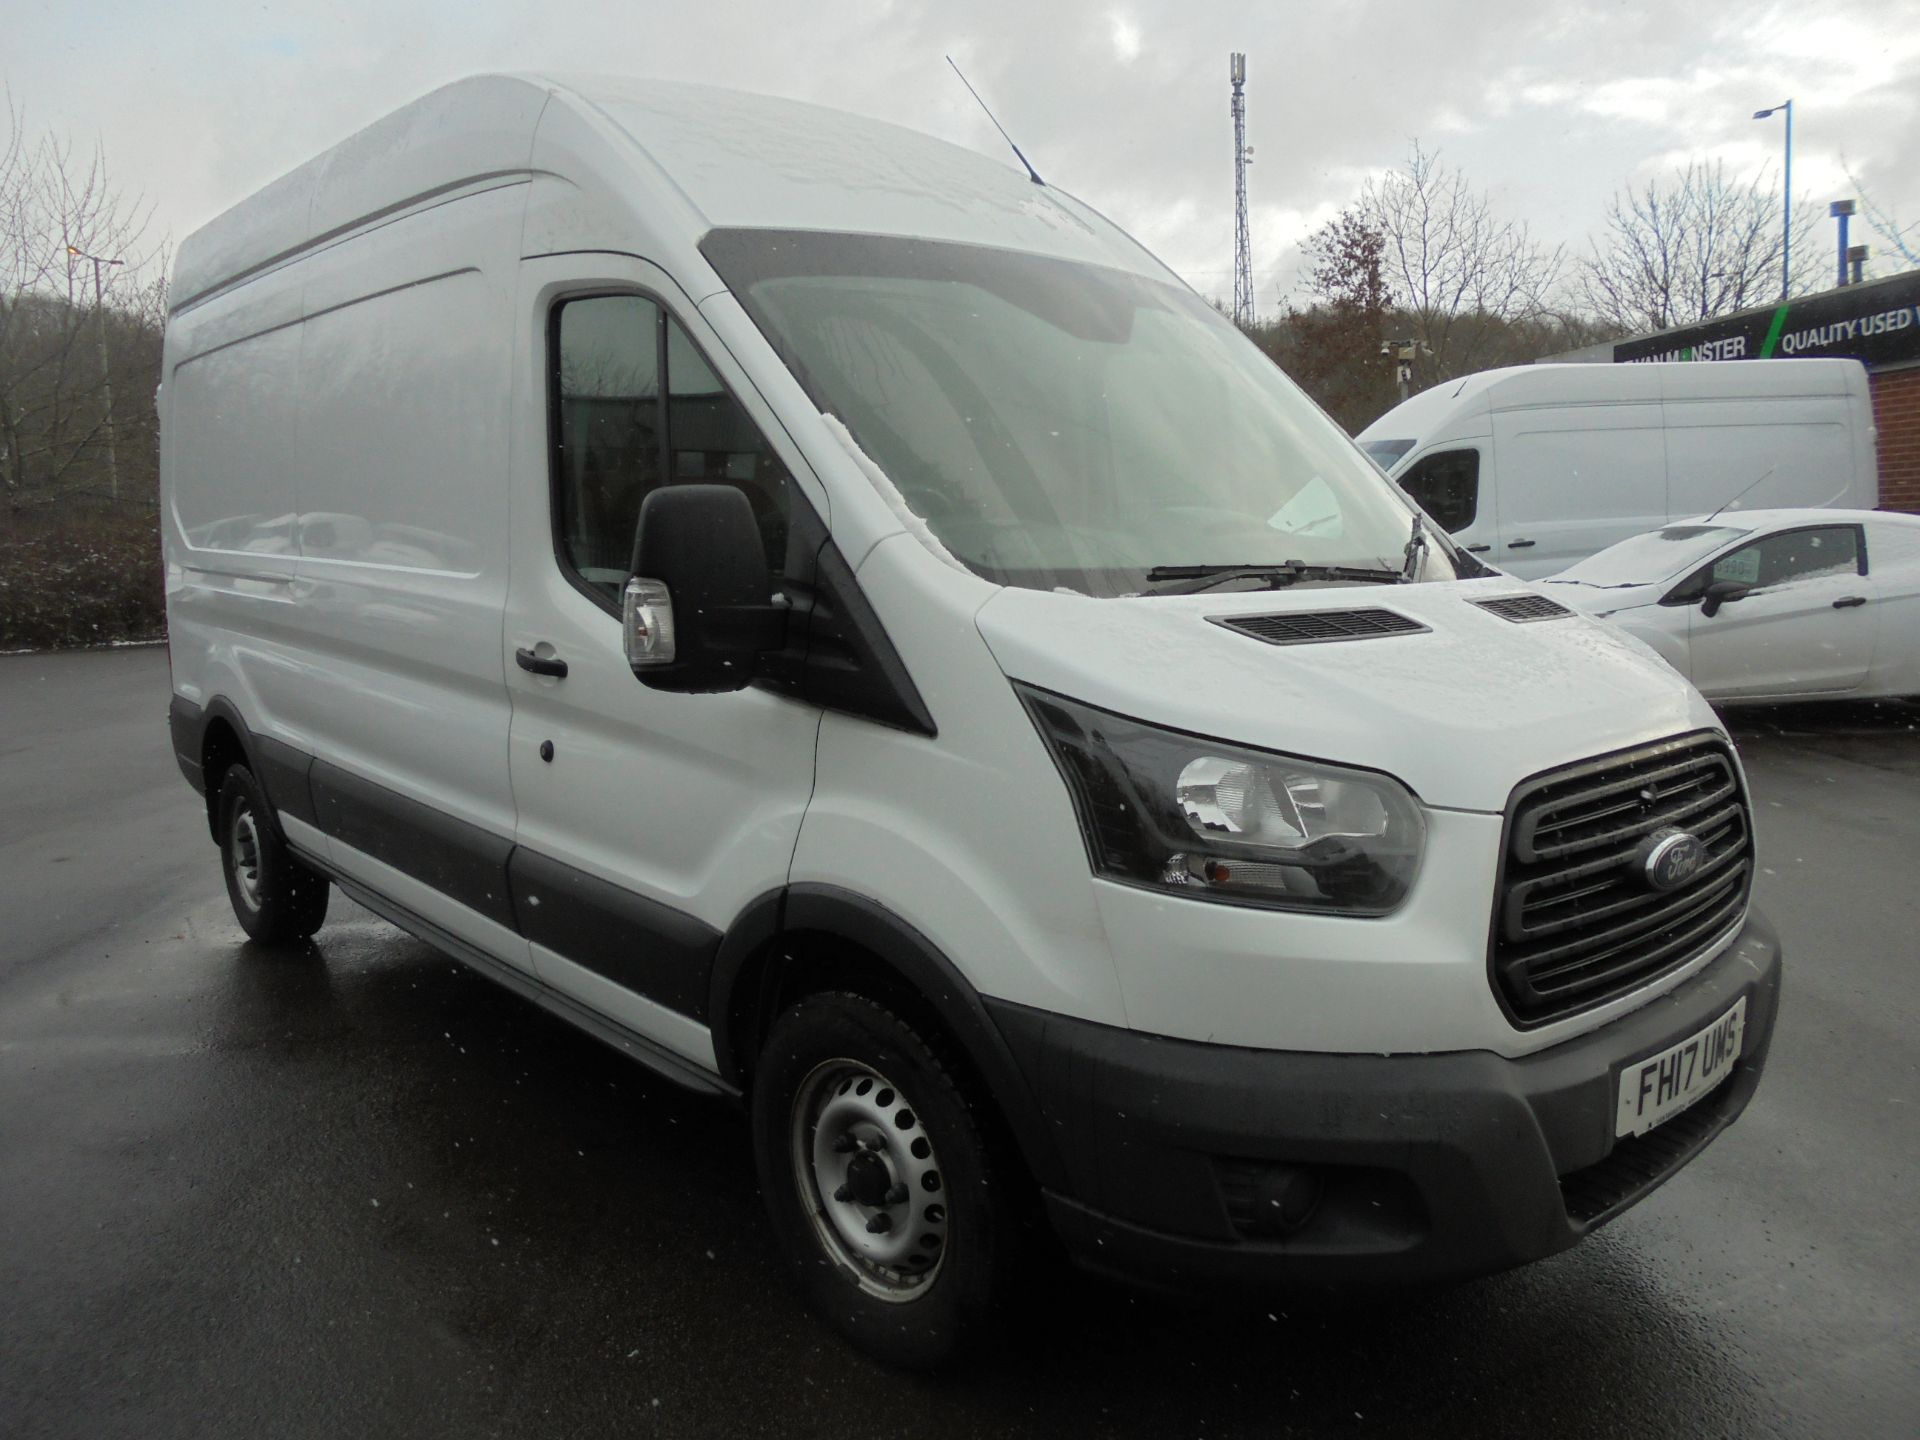 2017 Ford Transit 2.0 Tdci 130Ps H3 Van (FH17UMS)